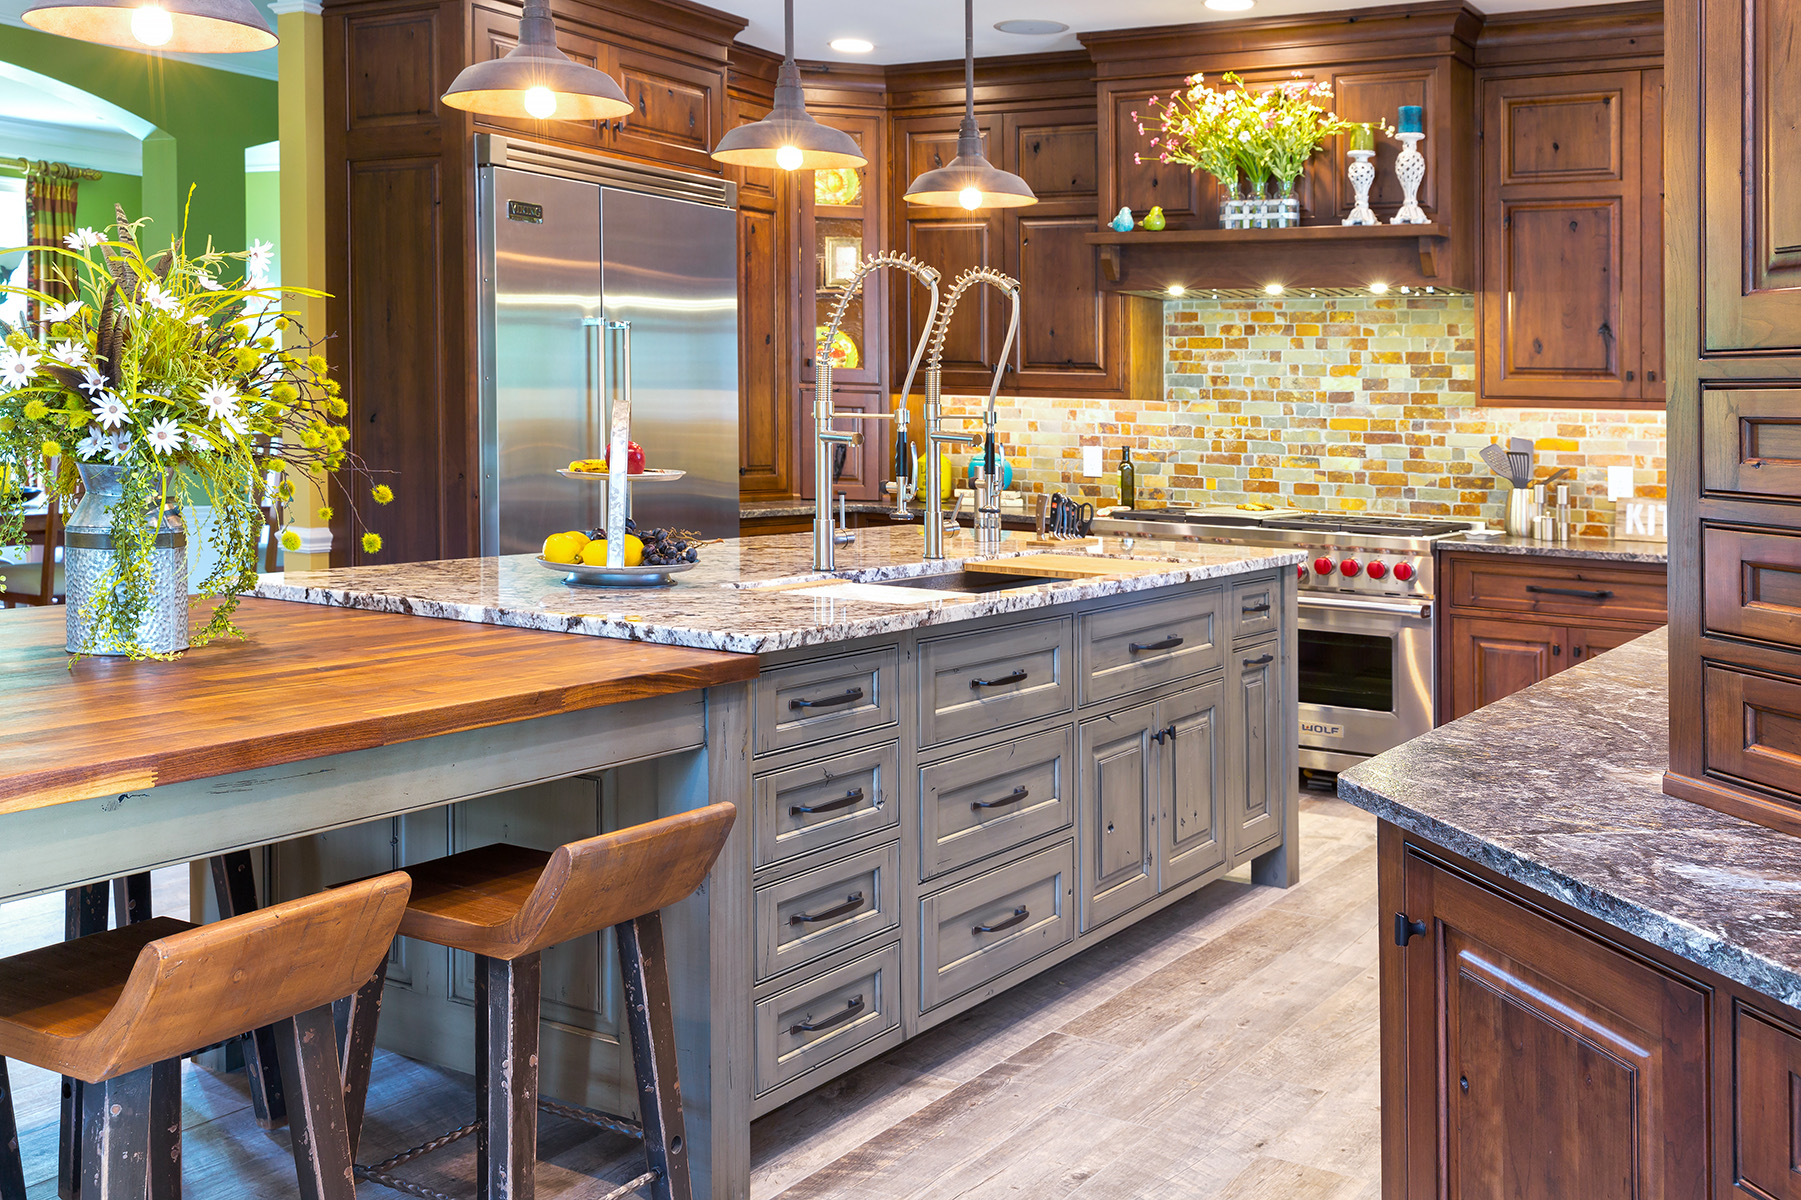 Cherry Kitchens - Wood Hollow Cabinets